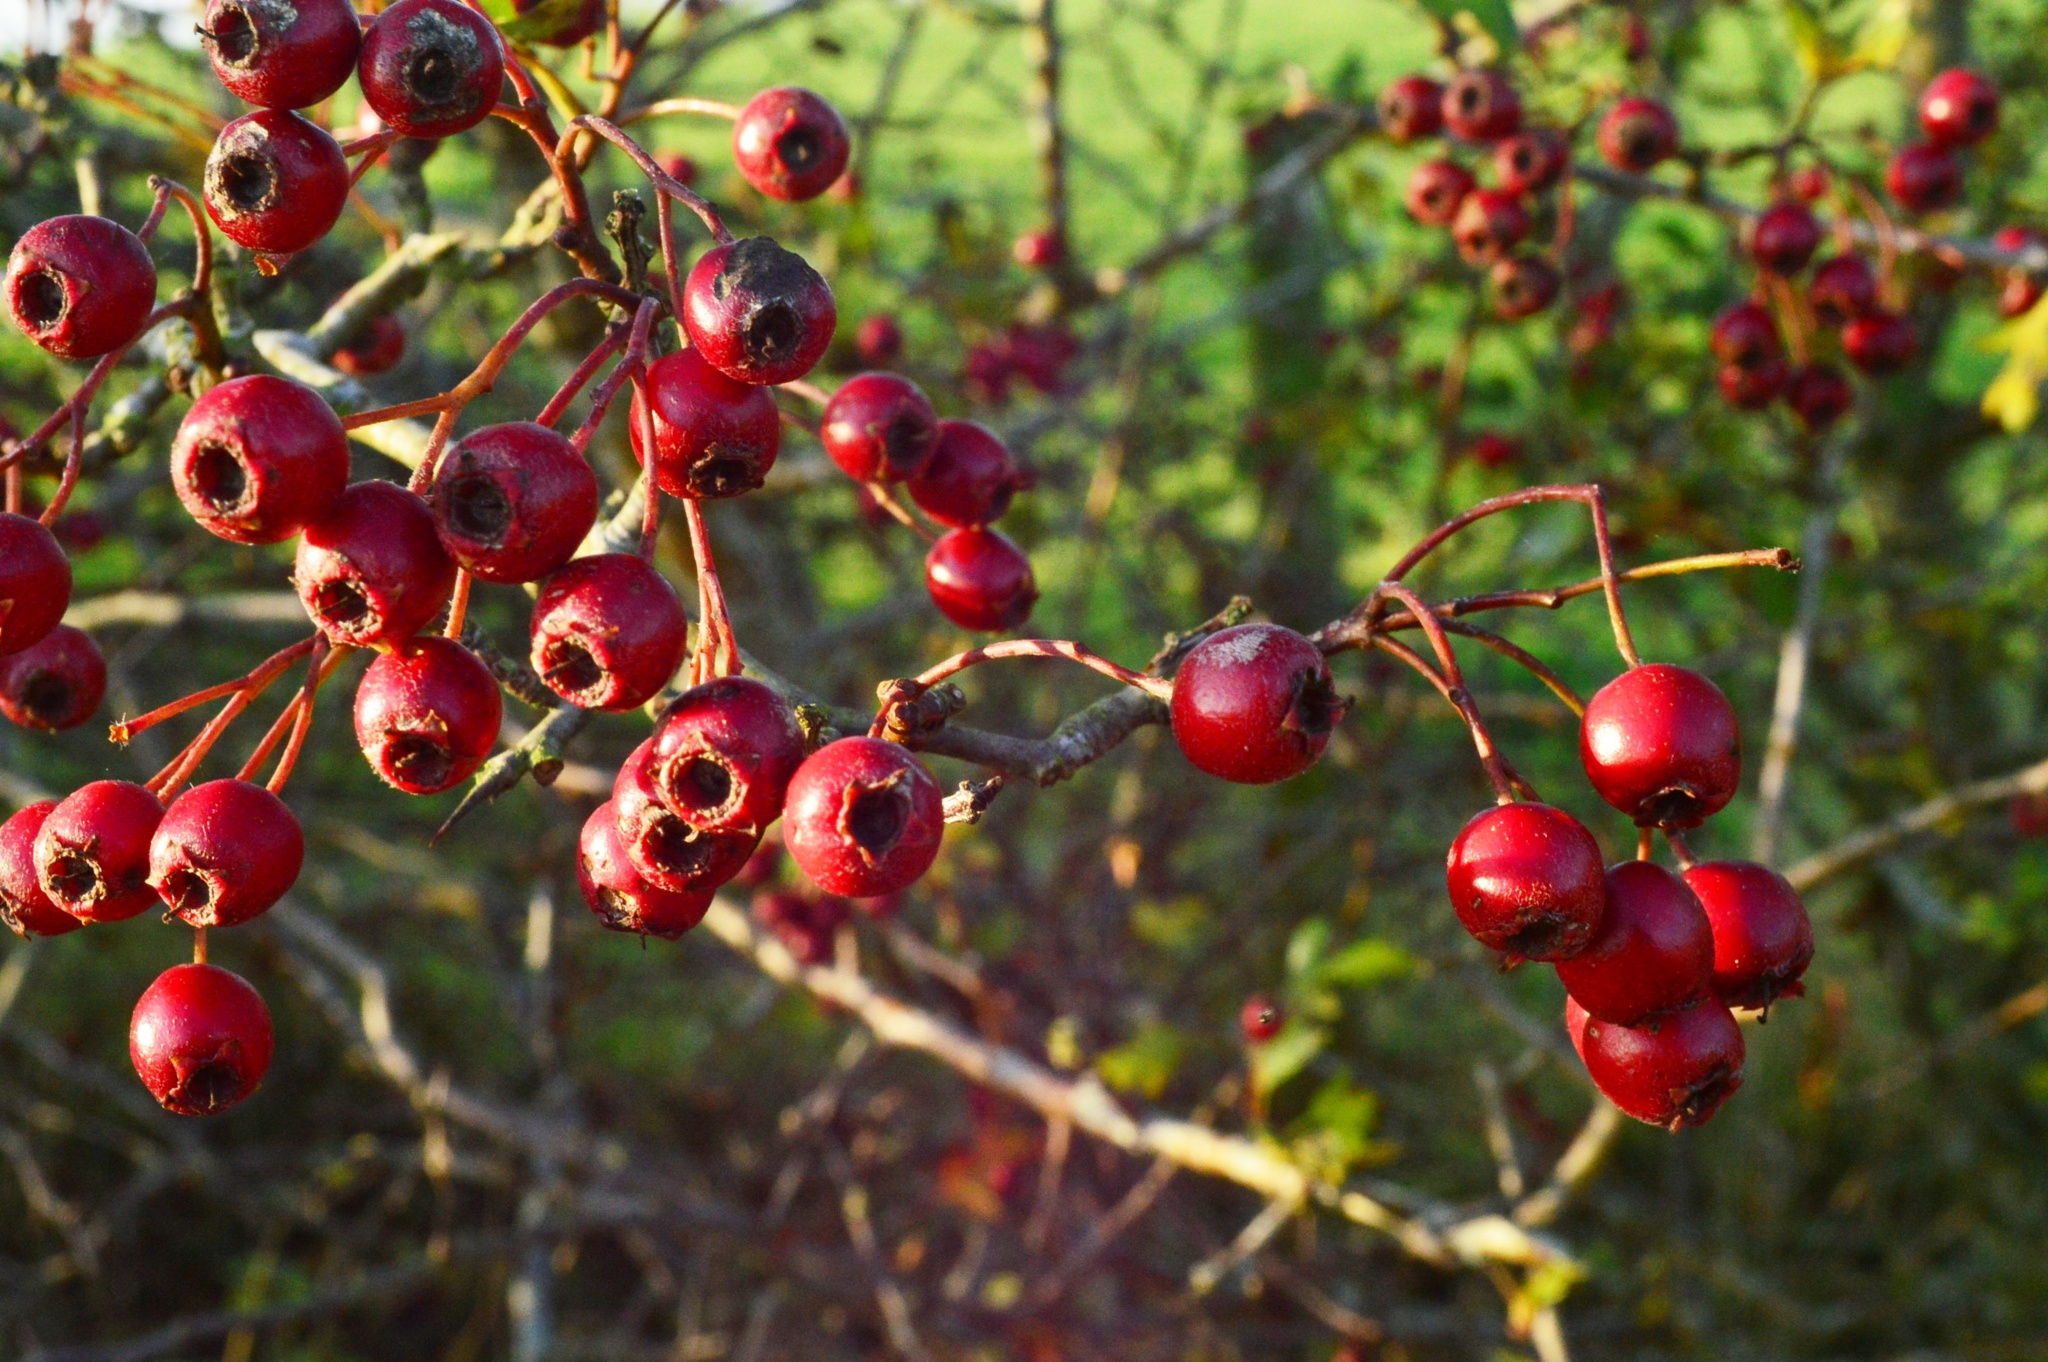 Autumn Berries by andrewwalker14